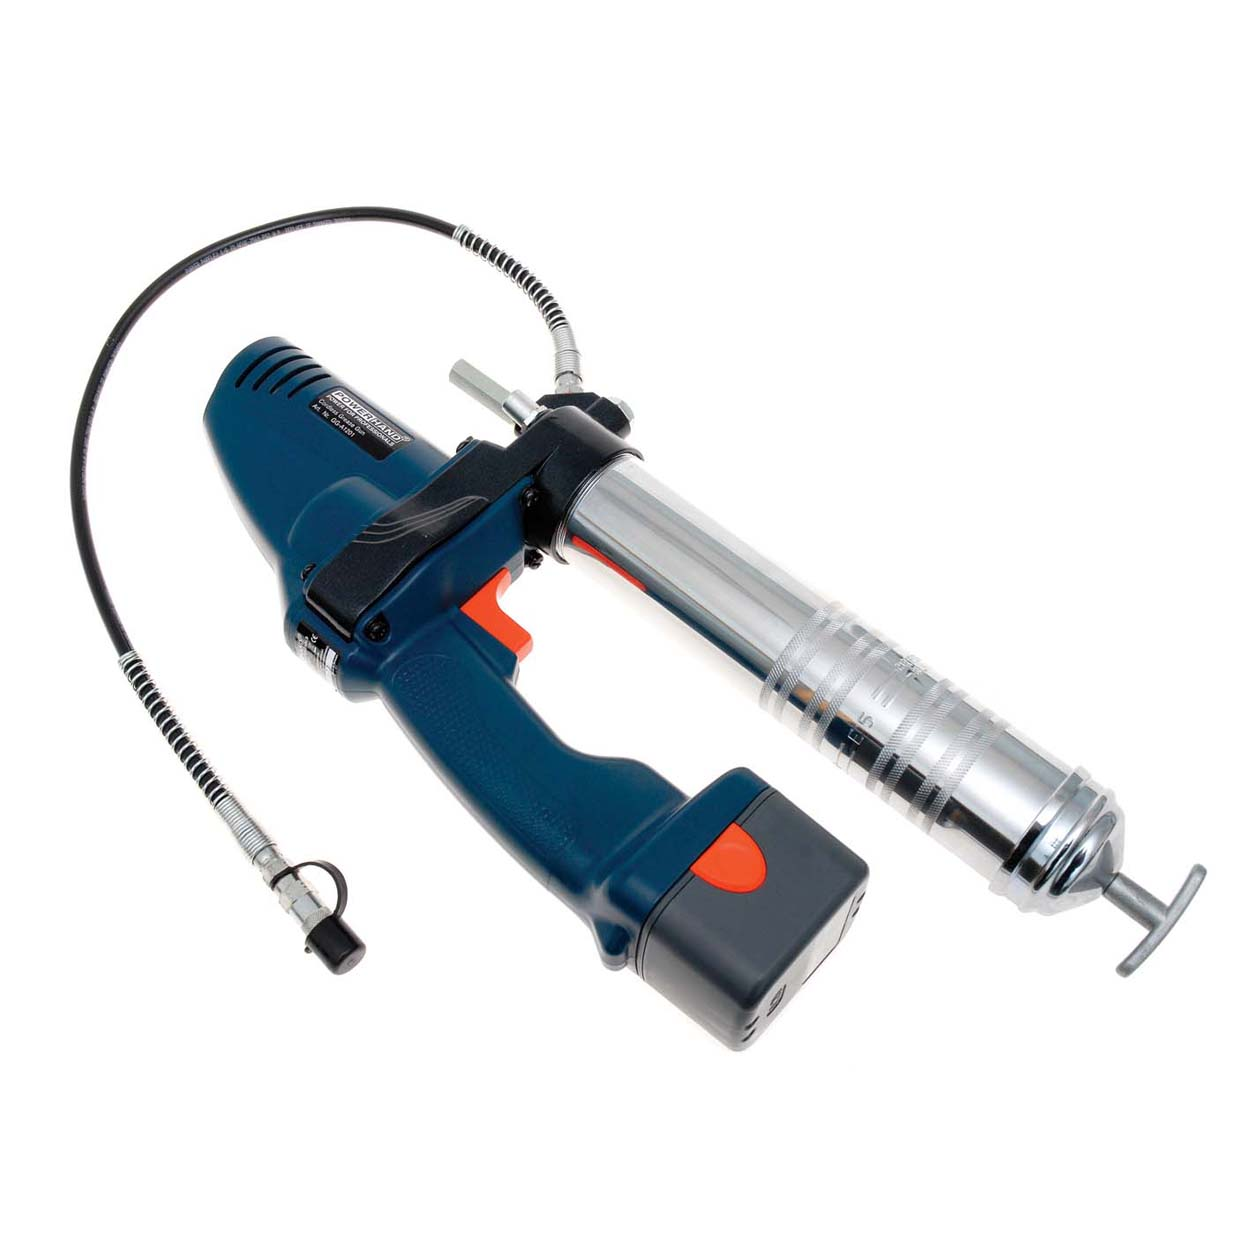 GX3000 Cordless Grease Gun